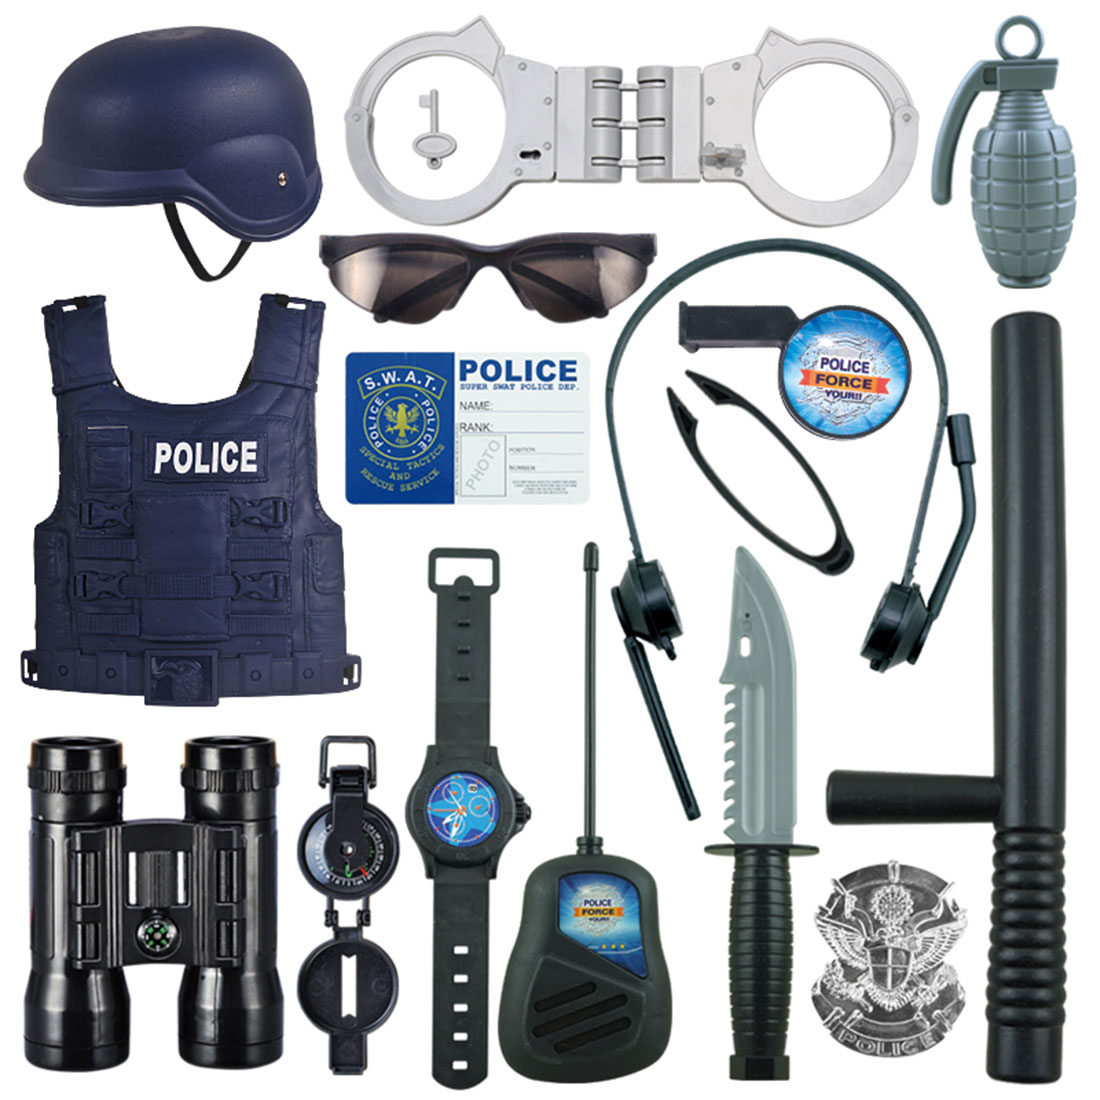 NFSTRIKE 16Pcs Children Pretend Play Police Officer Props Police Role Play Kit Cop Toy Set Handcuffs Child Police Costume Game